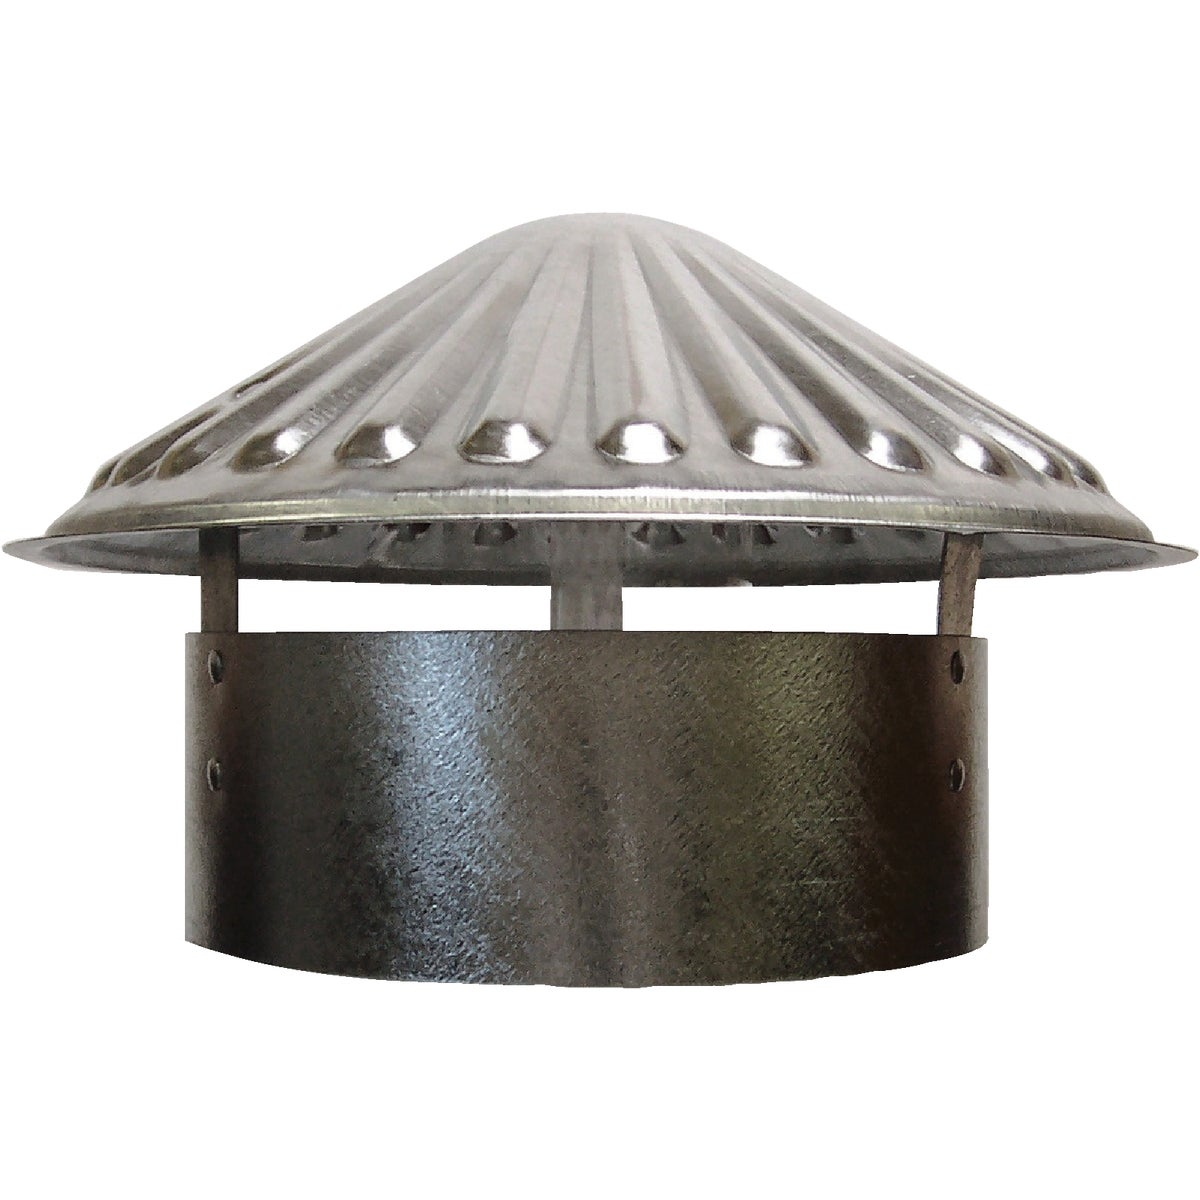 "8"" VENT PIPE CAP - D-288 by S & K Products Co"